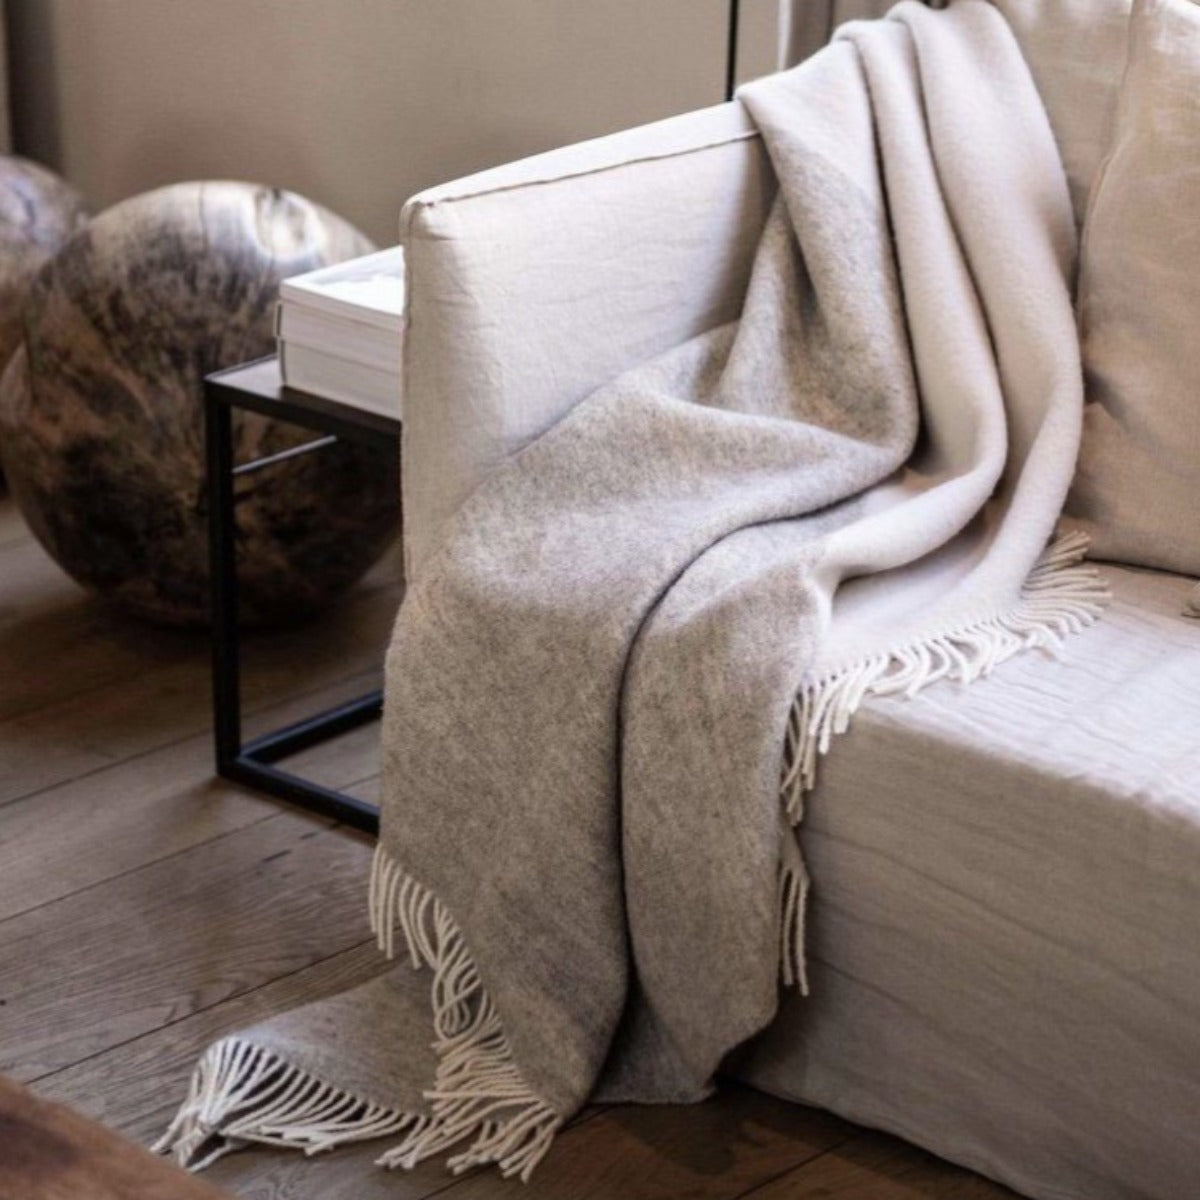 100% PURE NEW WOOL THROW | DUO ECRU I am Nomad